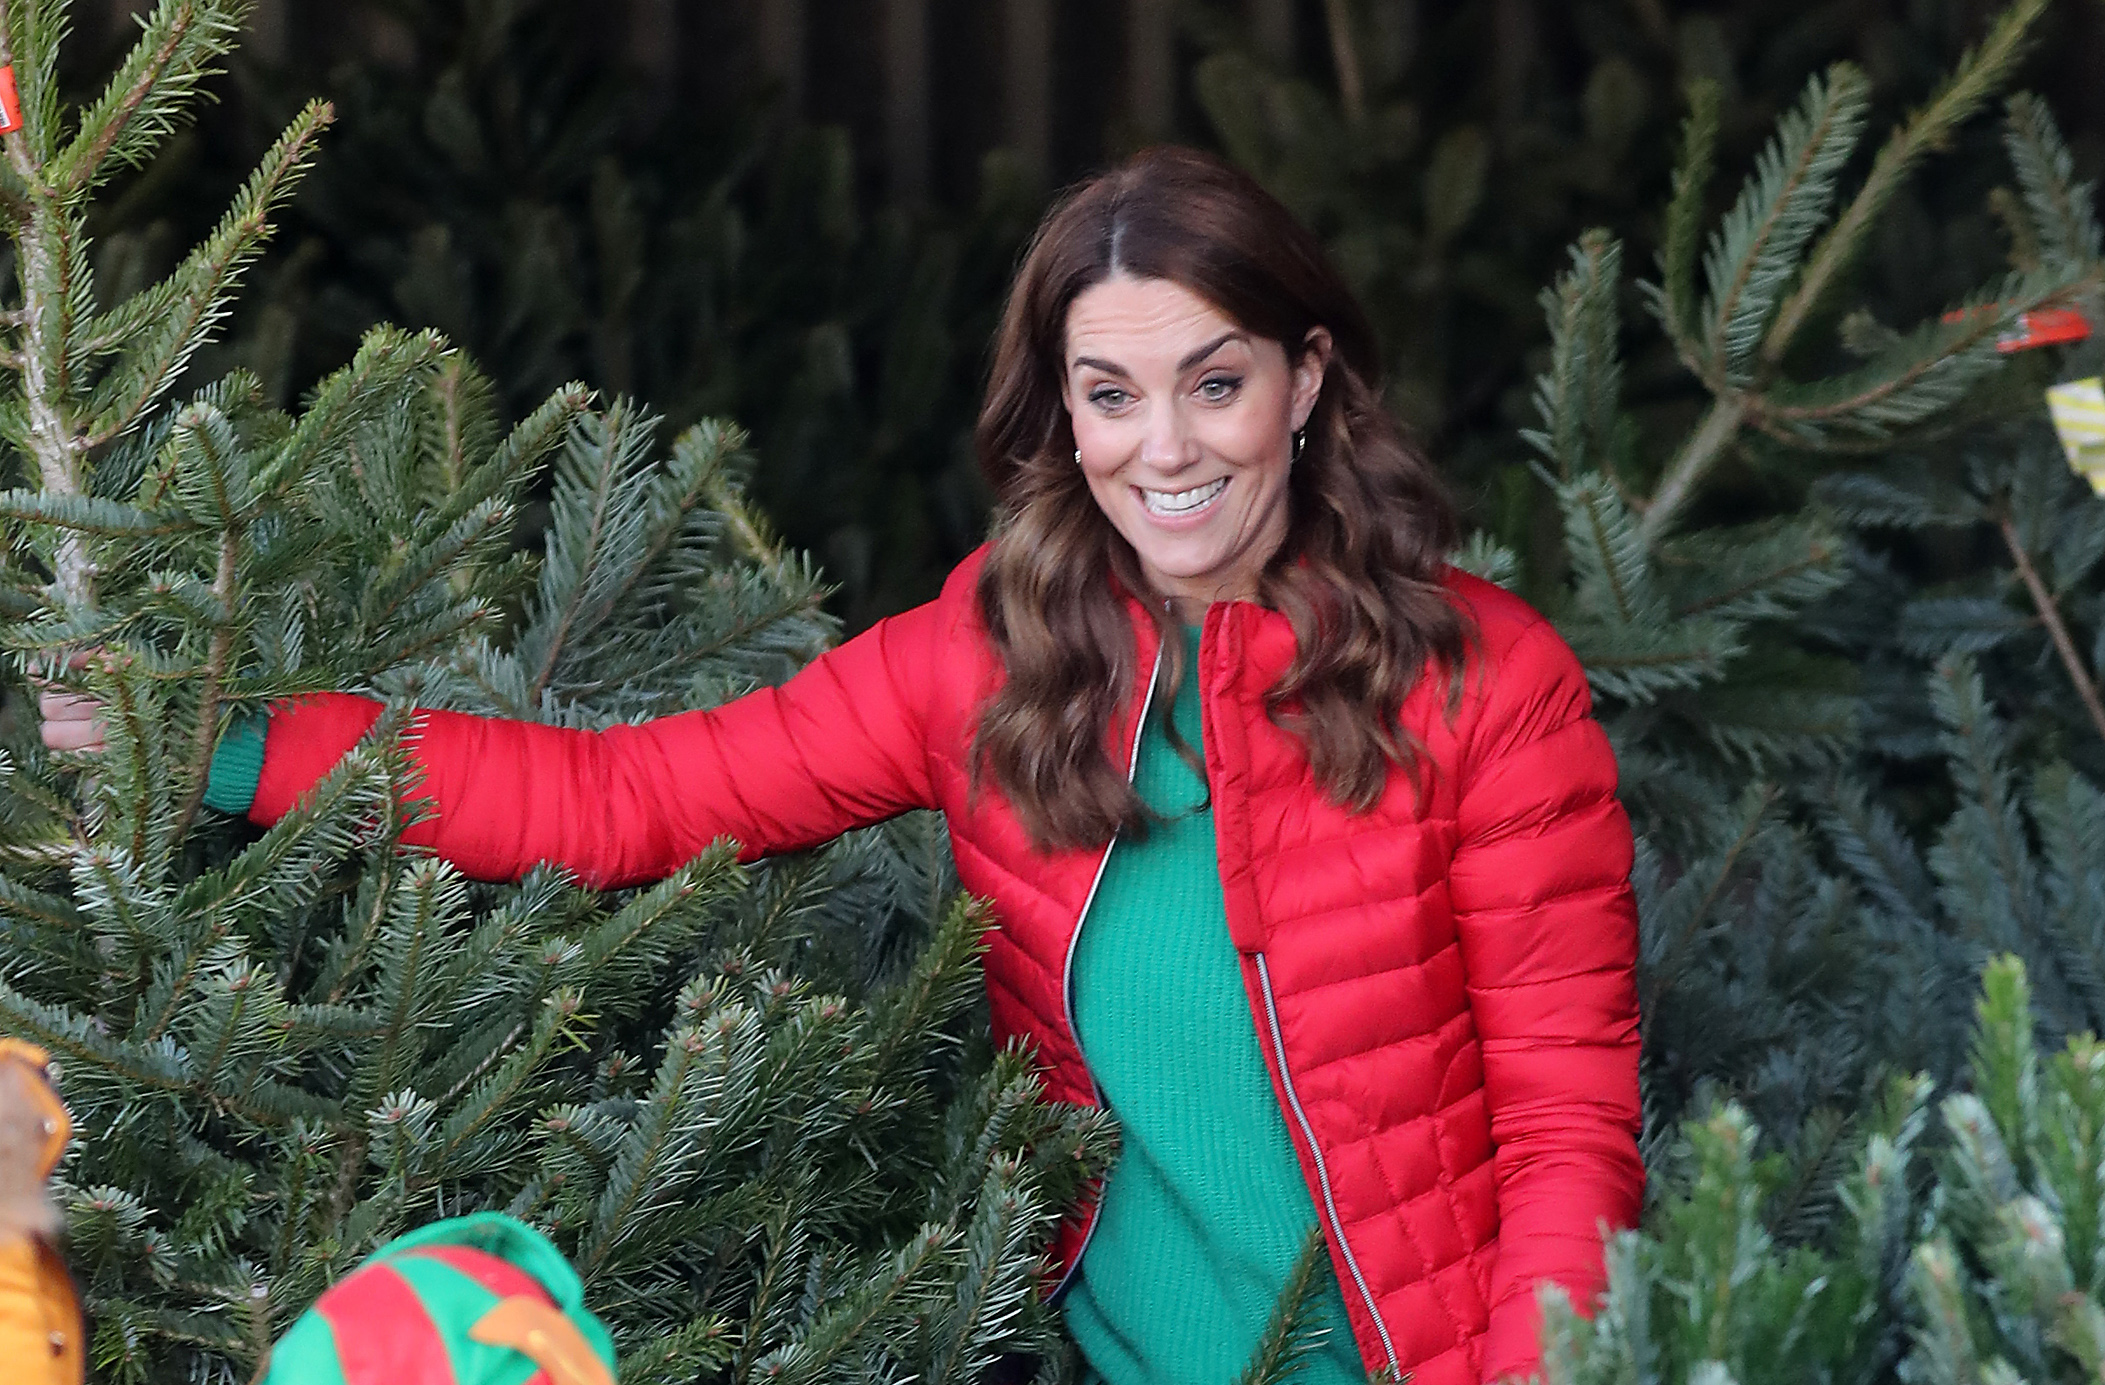 'This video is just the best' Royal fans are loving this video of Kate Middleton picking a Christmas tree with children